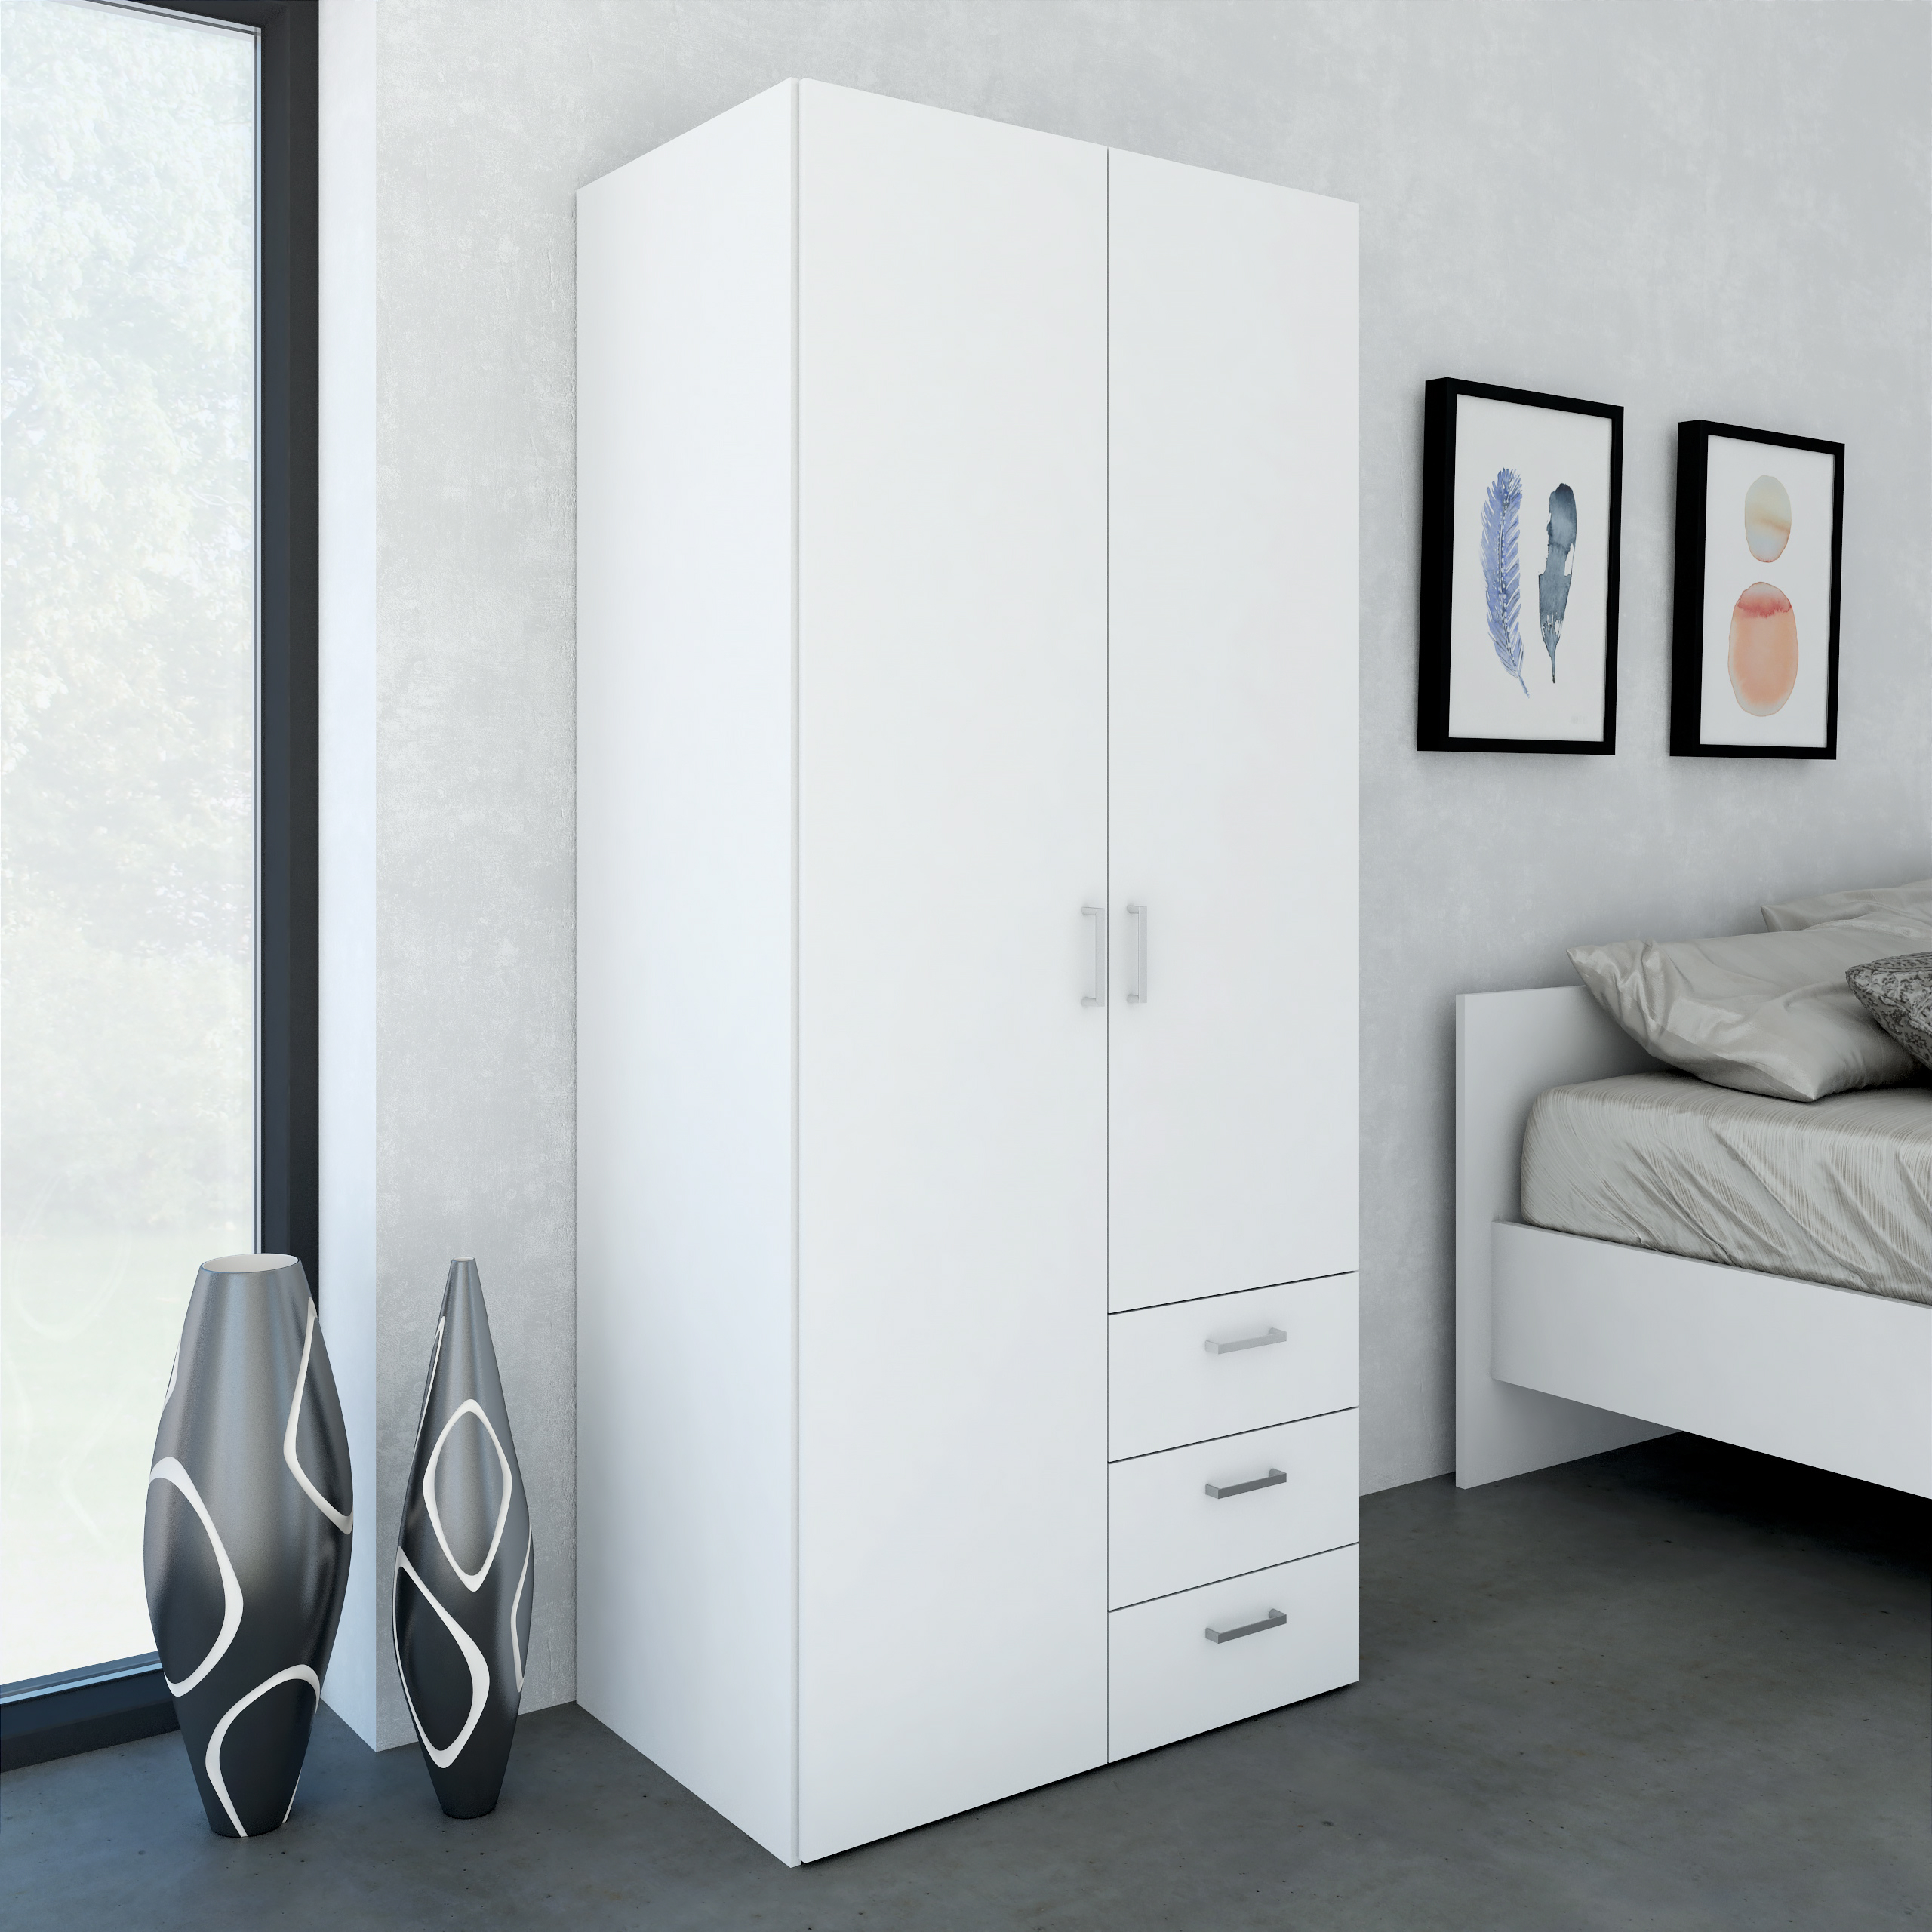 Space Wardrobe with 2 Doors and 3 Drawers